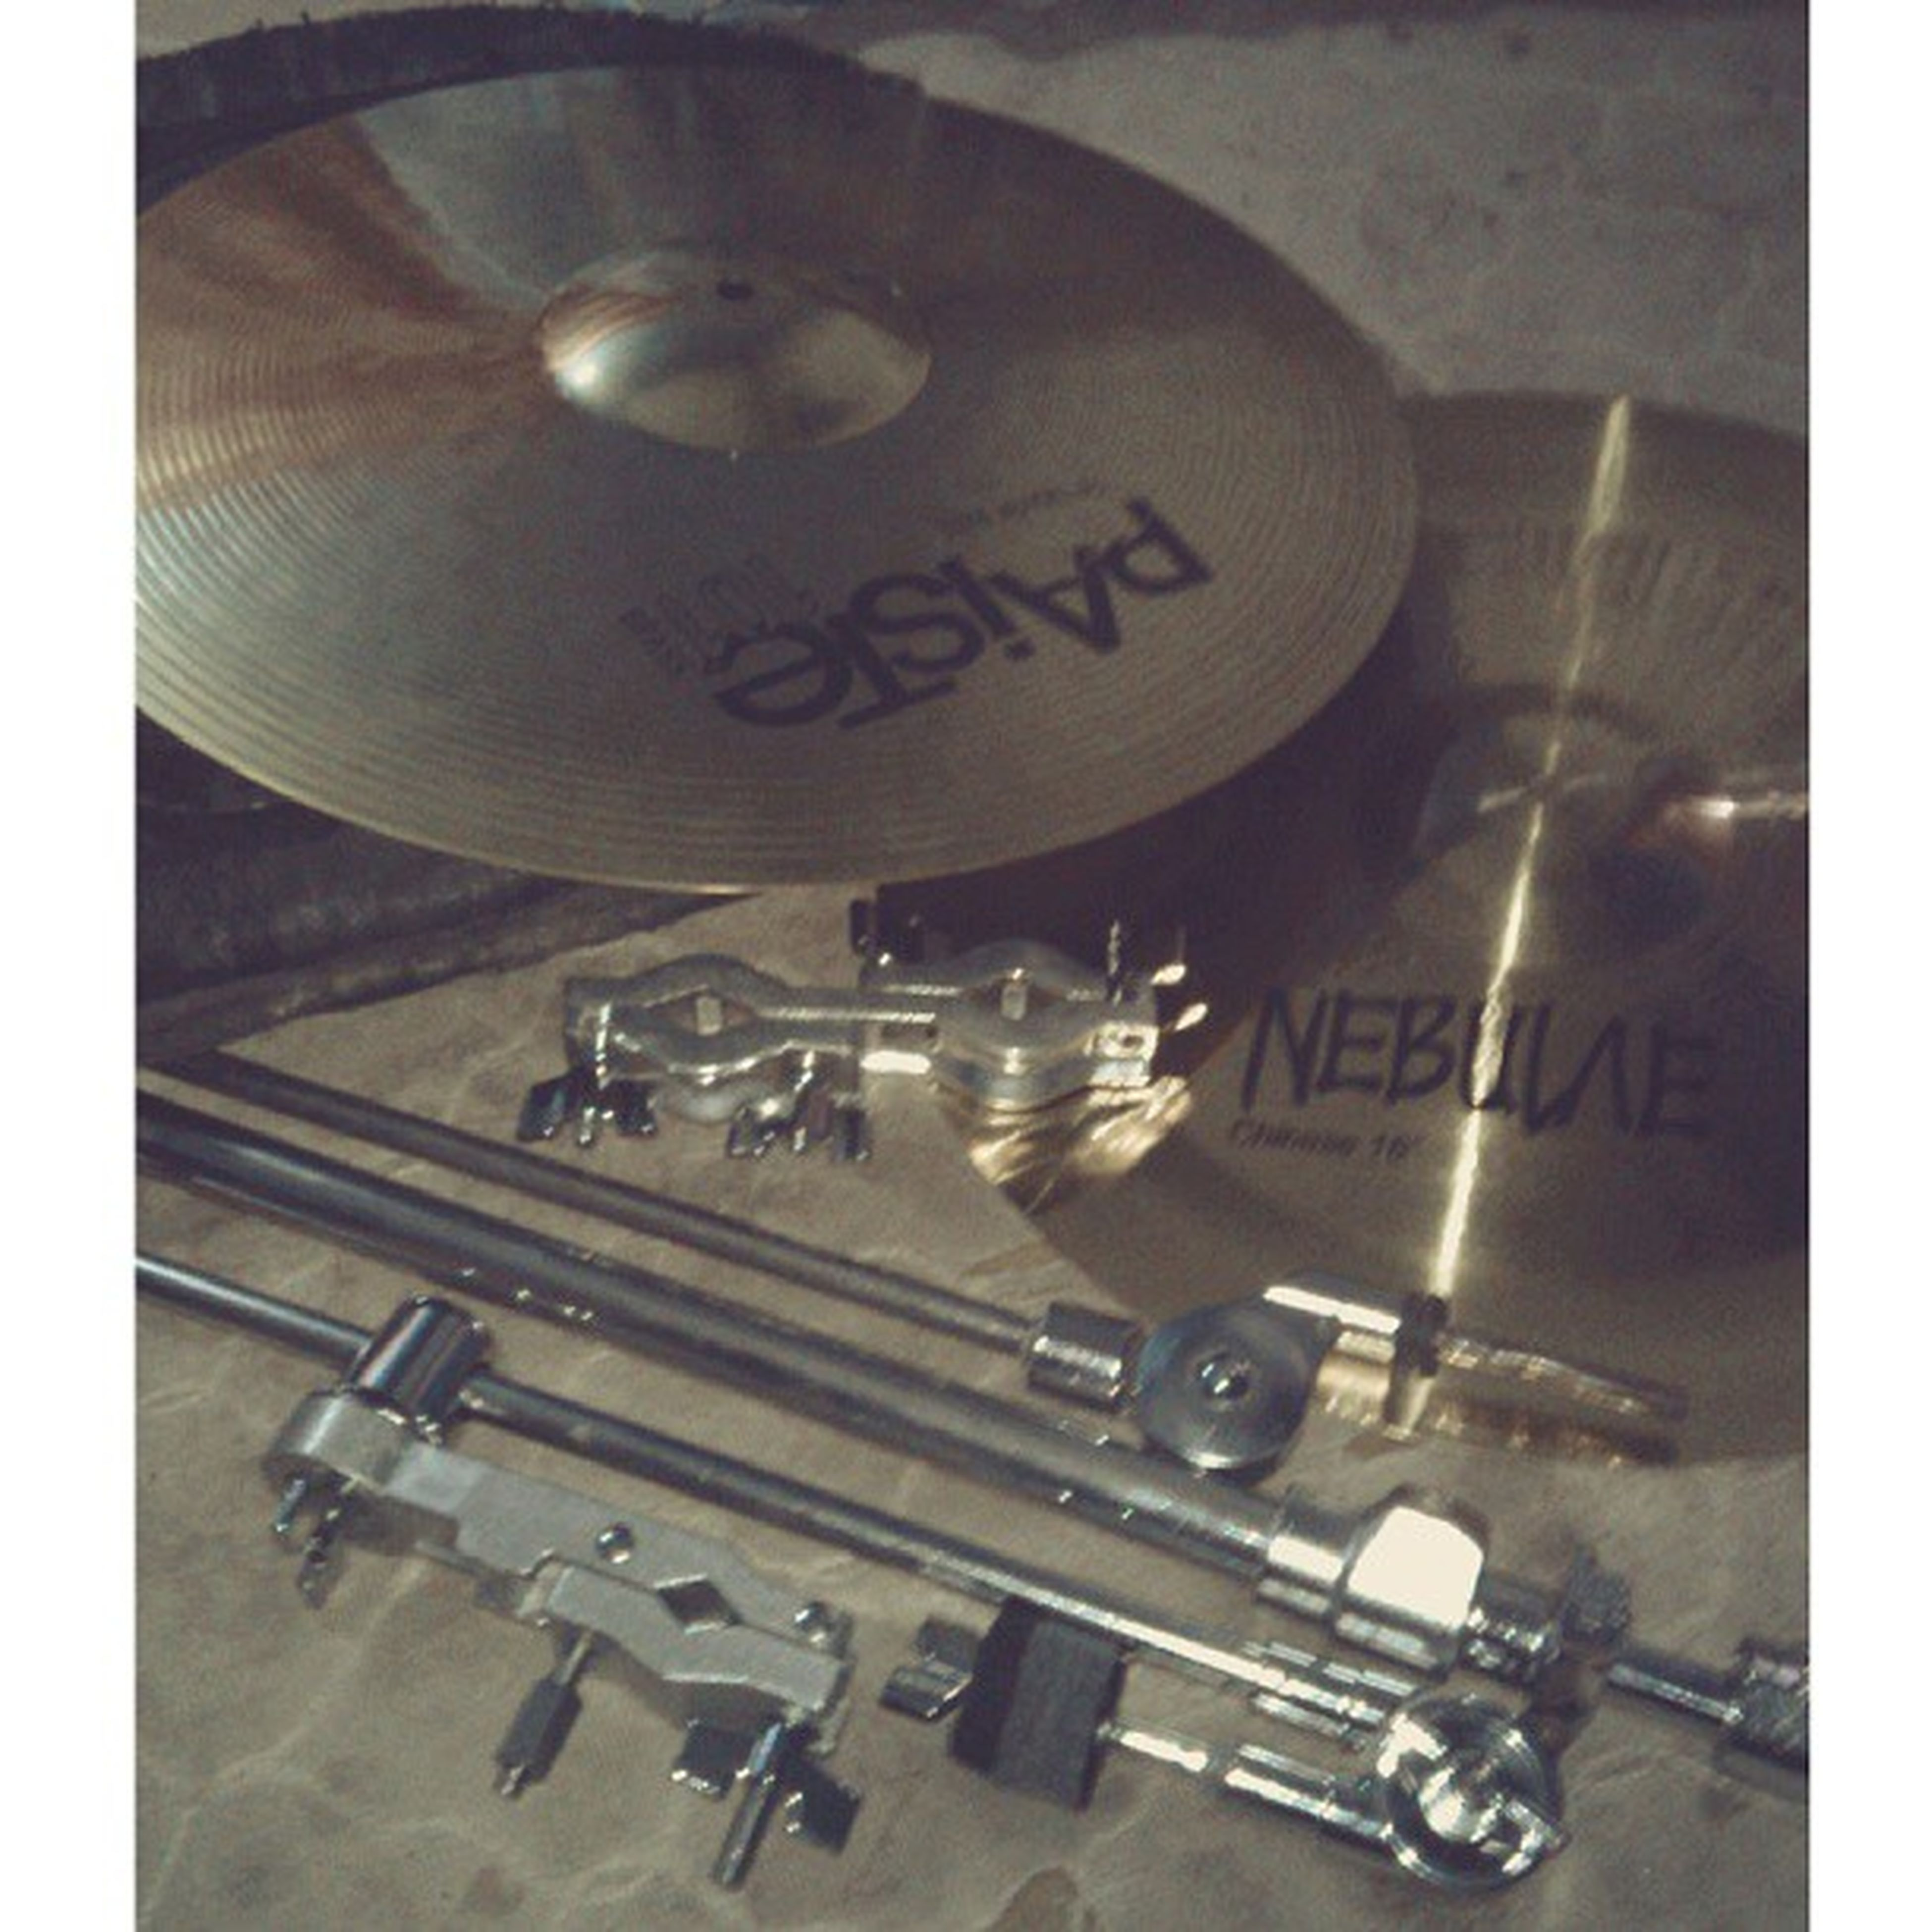 Myweapon Hardware Effectdrum Crass18paiste chinese16nebulae clampgiblatar boomclampstandpearl boomstandcymbal